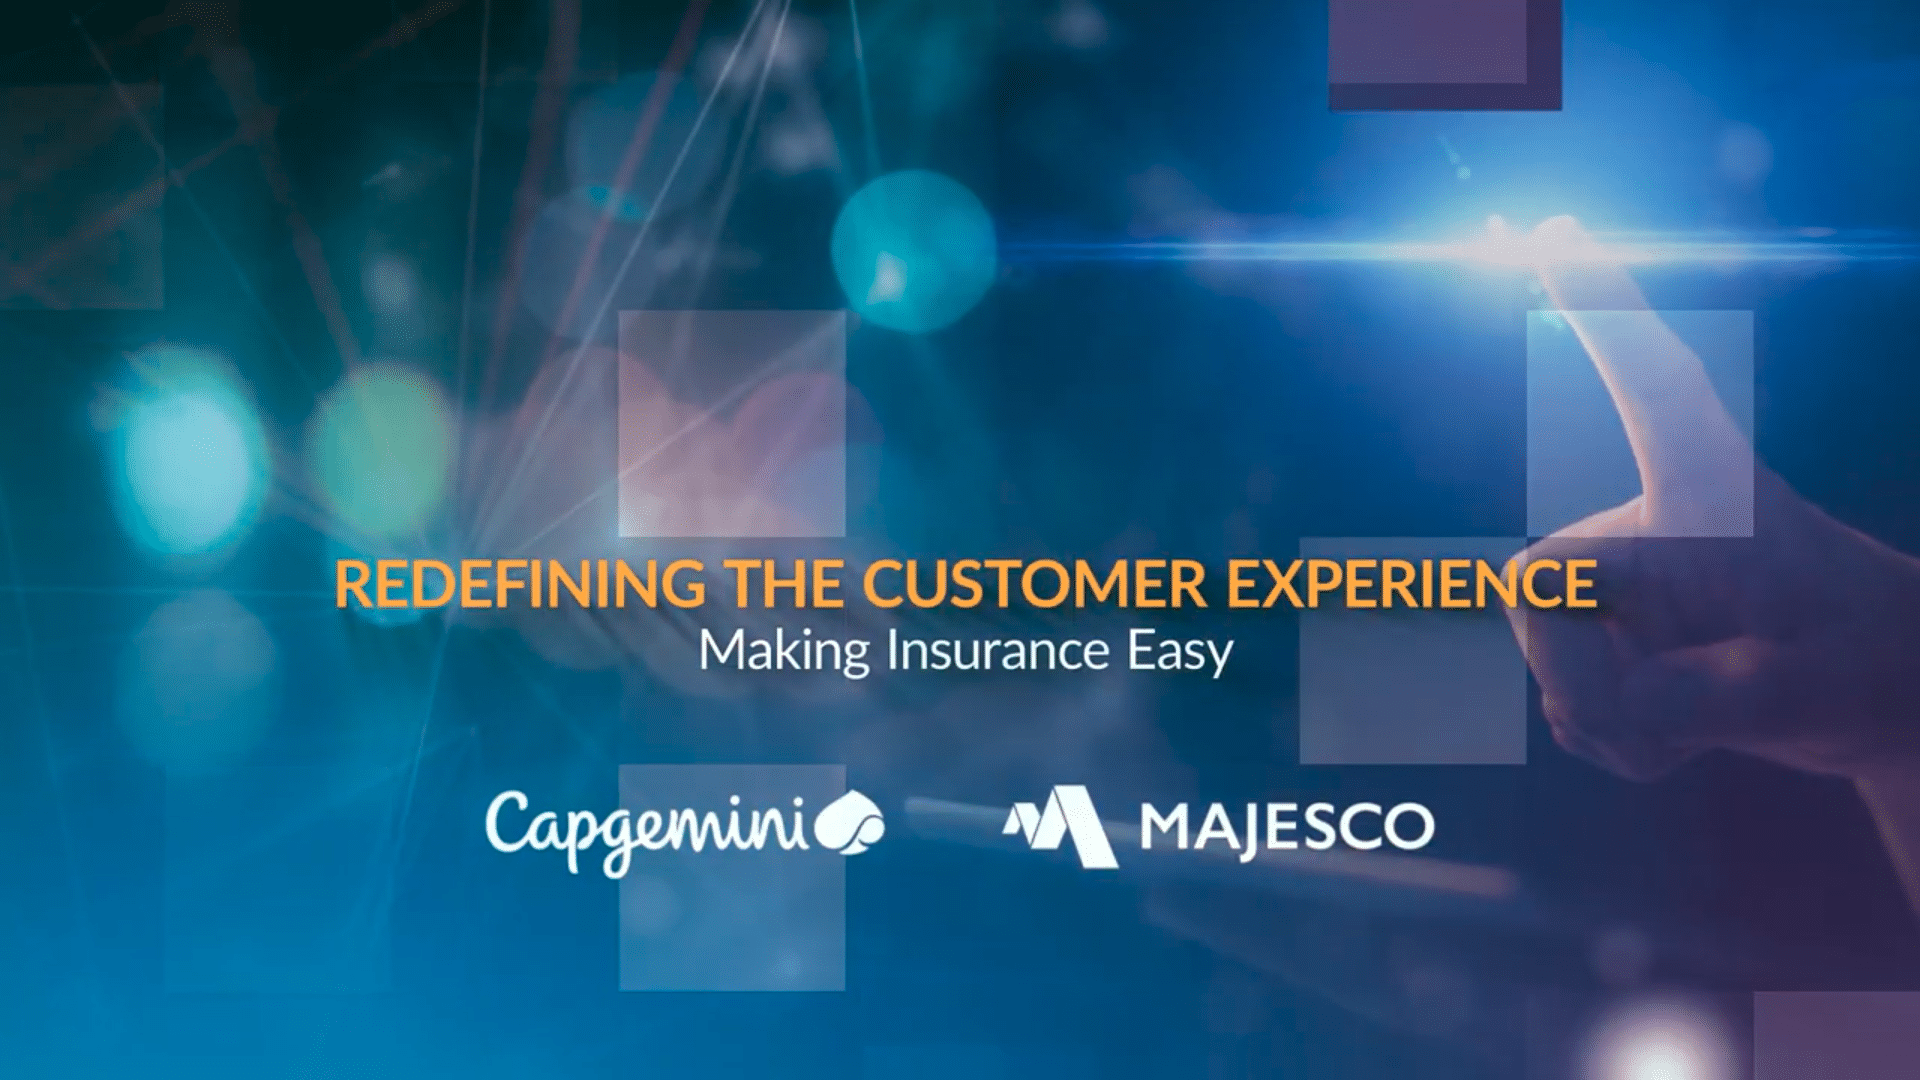 Redefining the Customer Experience with Capgemini and Majesco